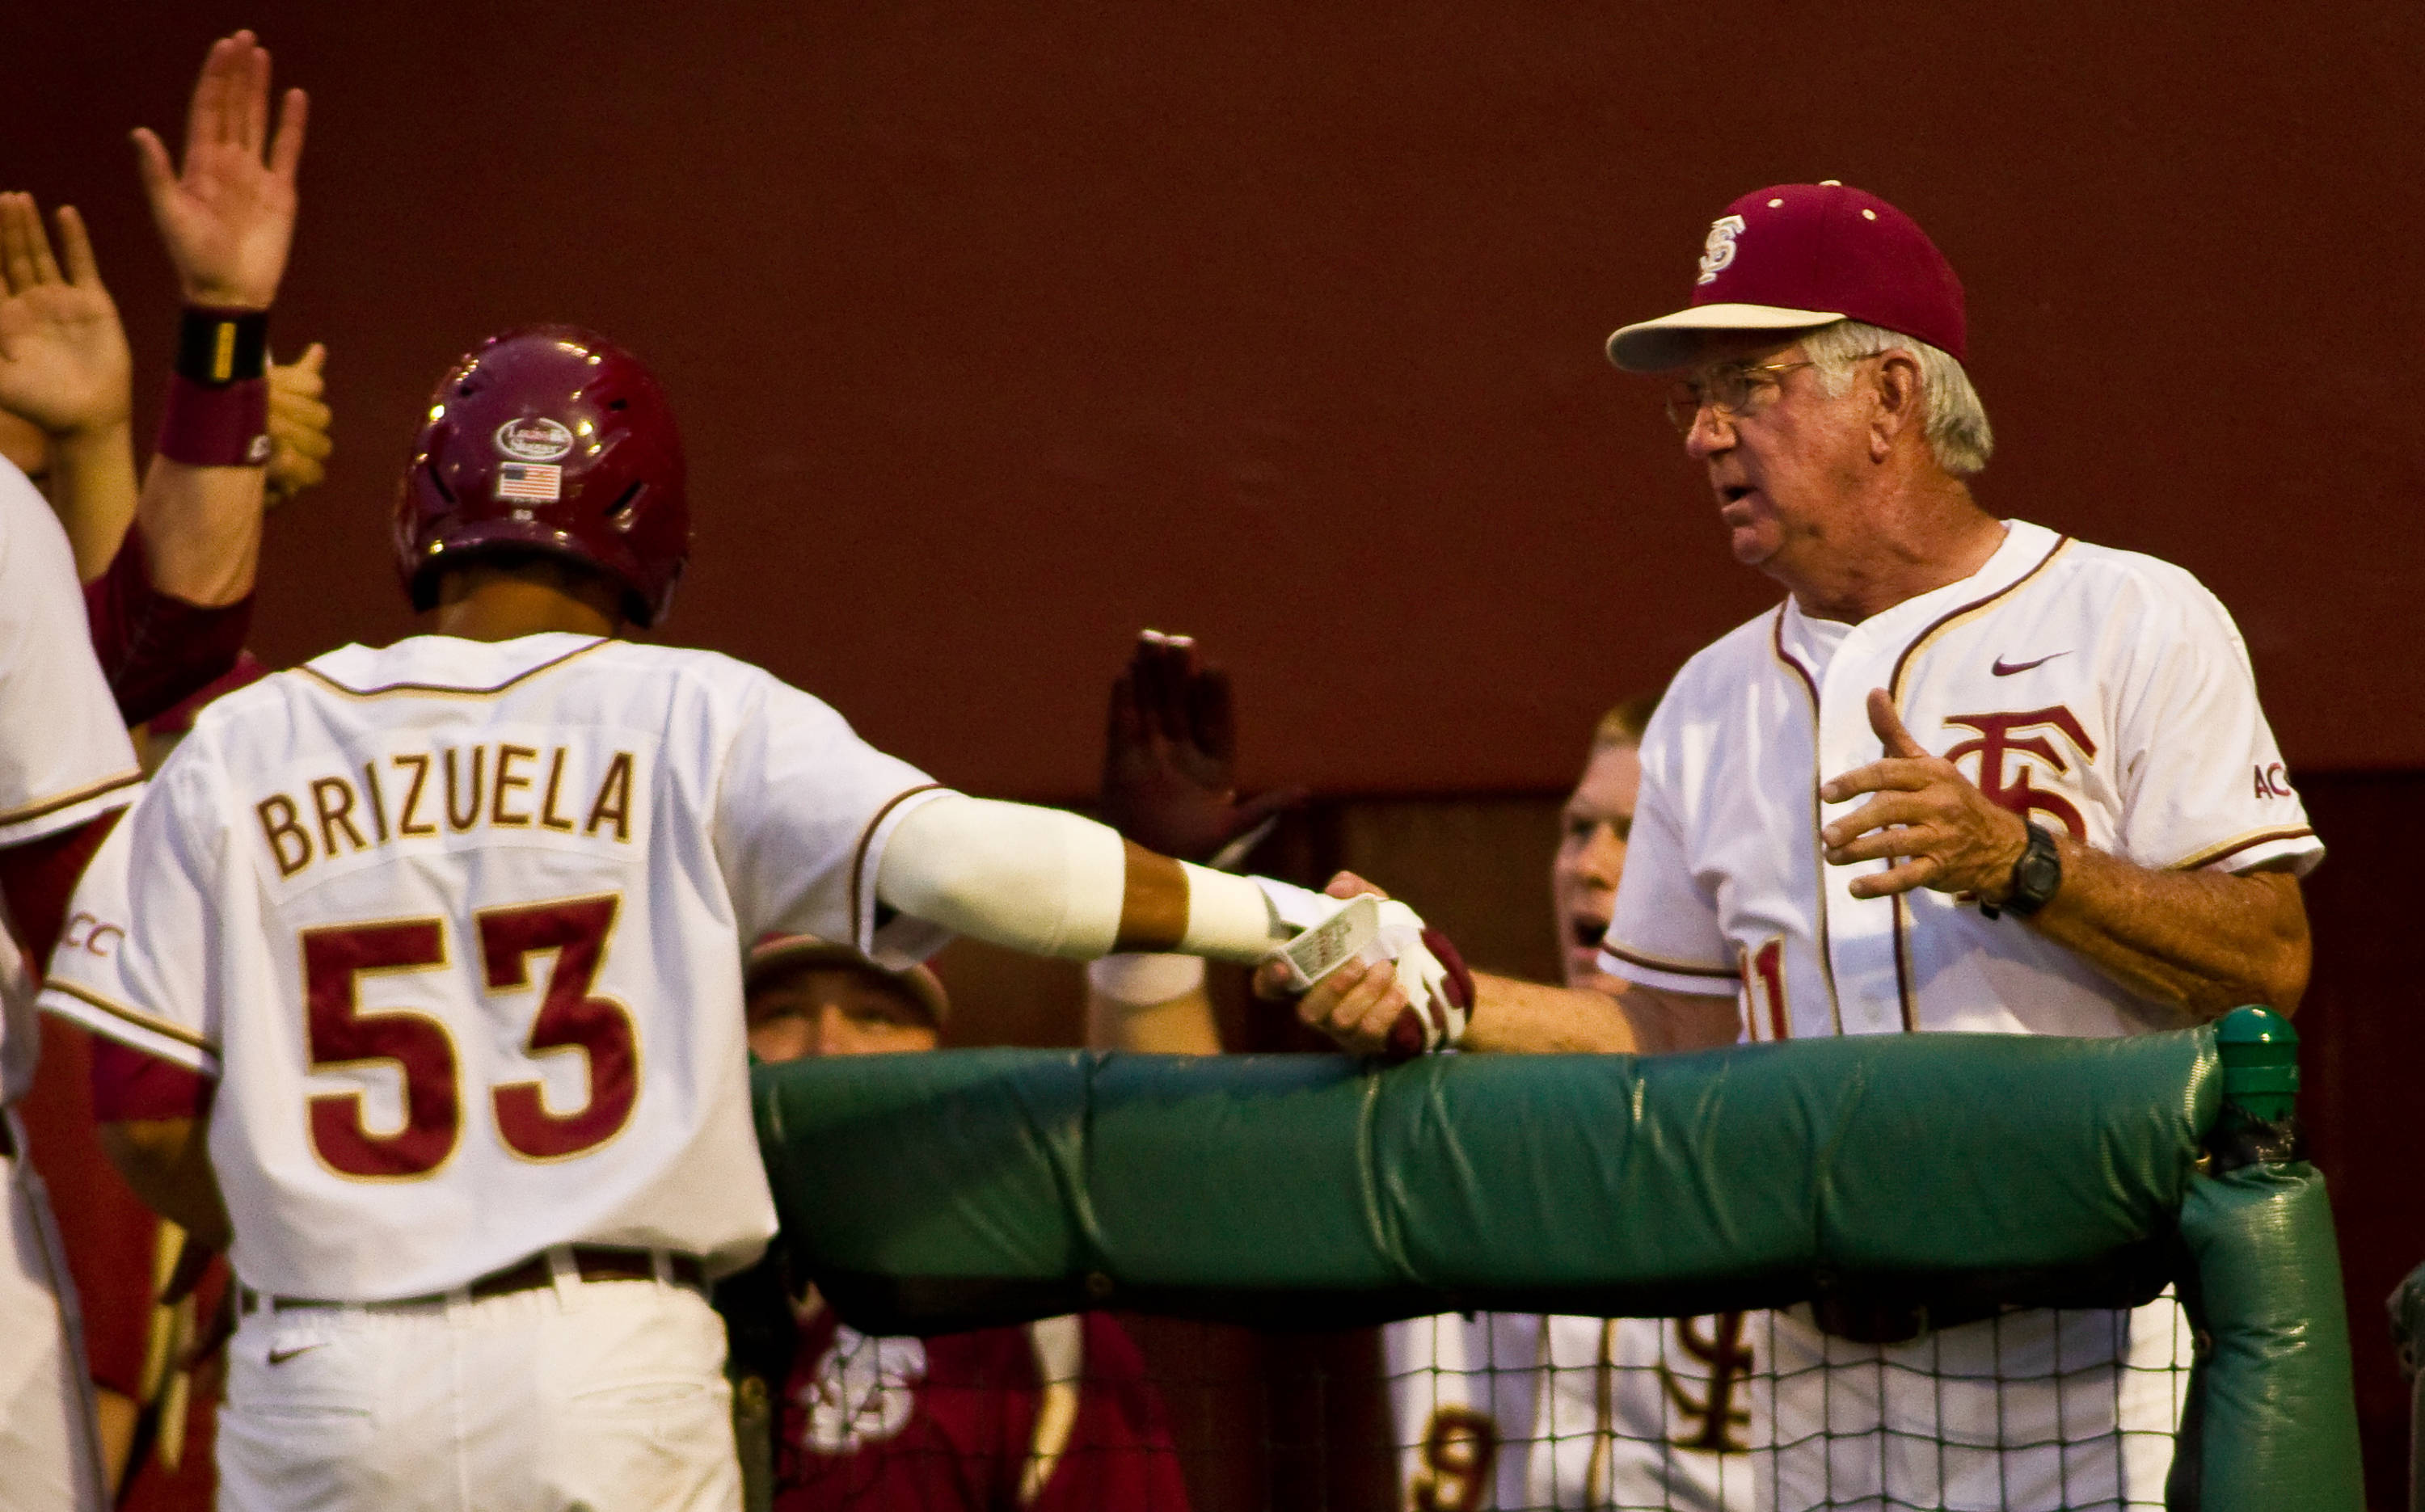 Jose Brizuela shakes hands with Mike Martin.